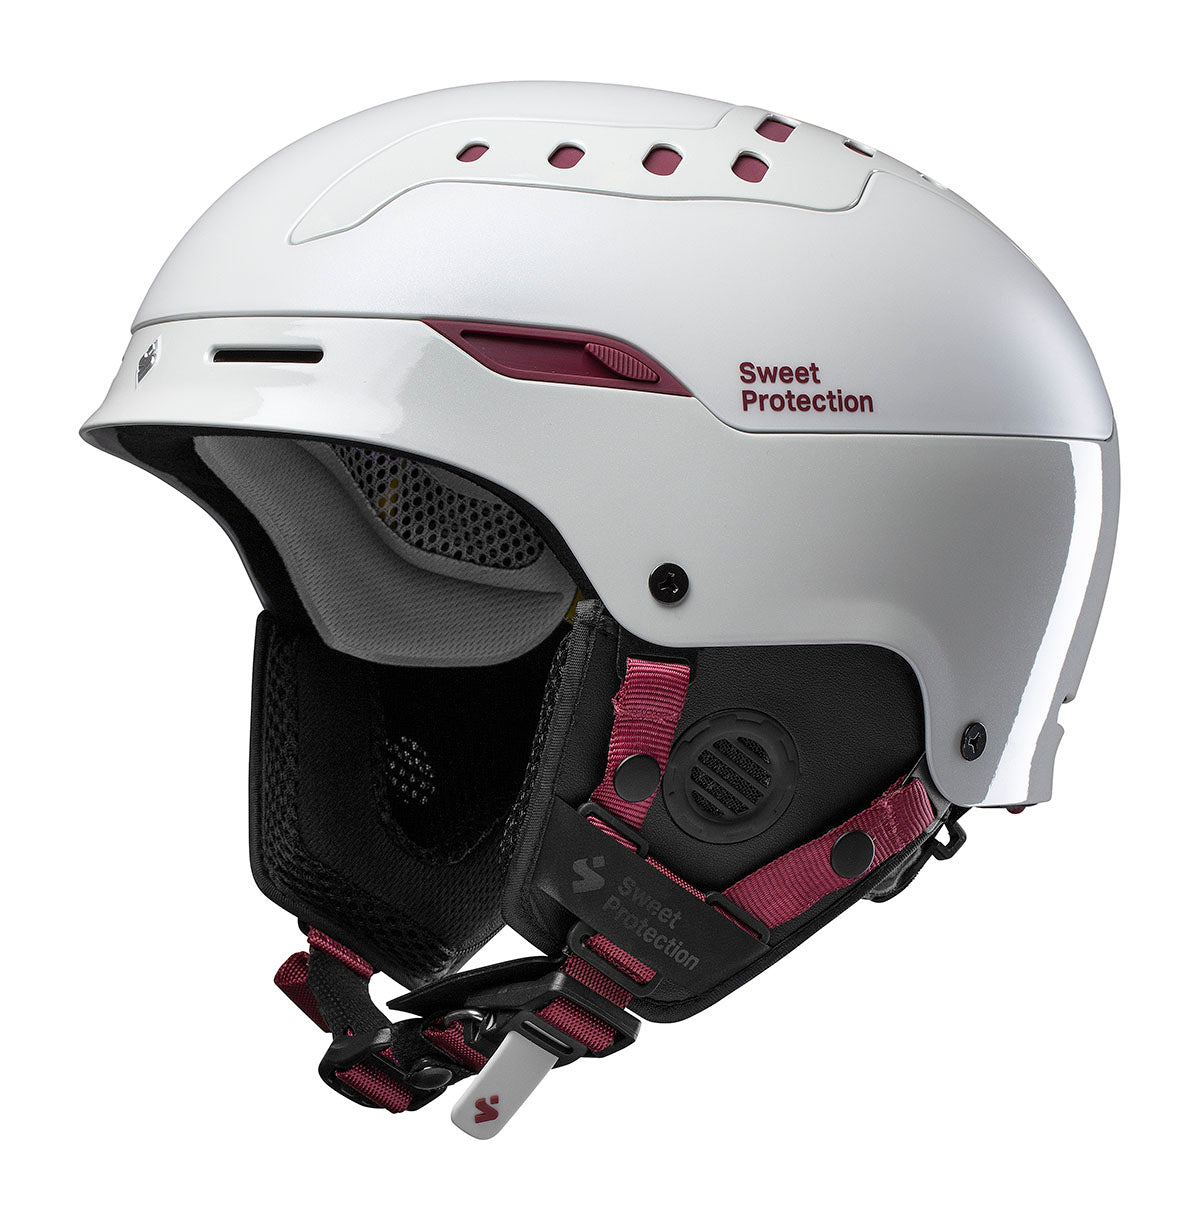 Sweet Protection Womens Switcher Skihjelm thumbnail